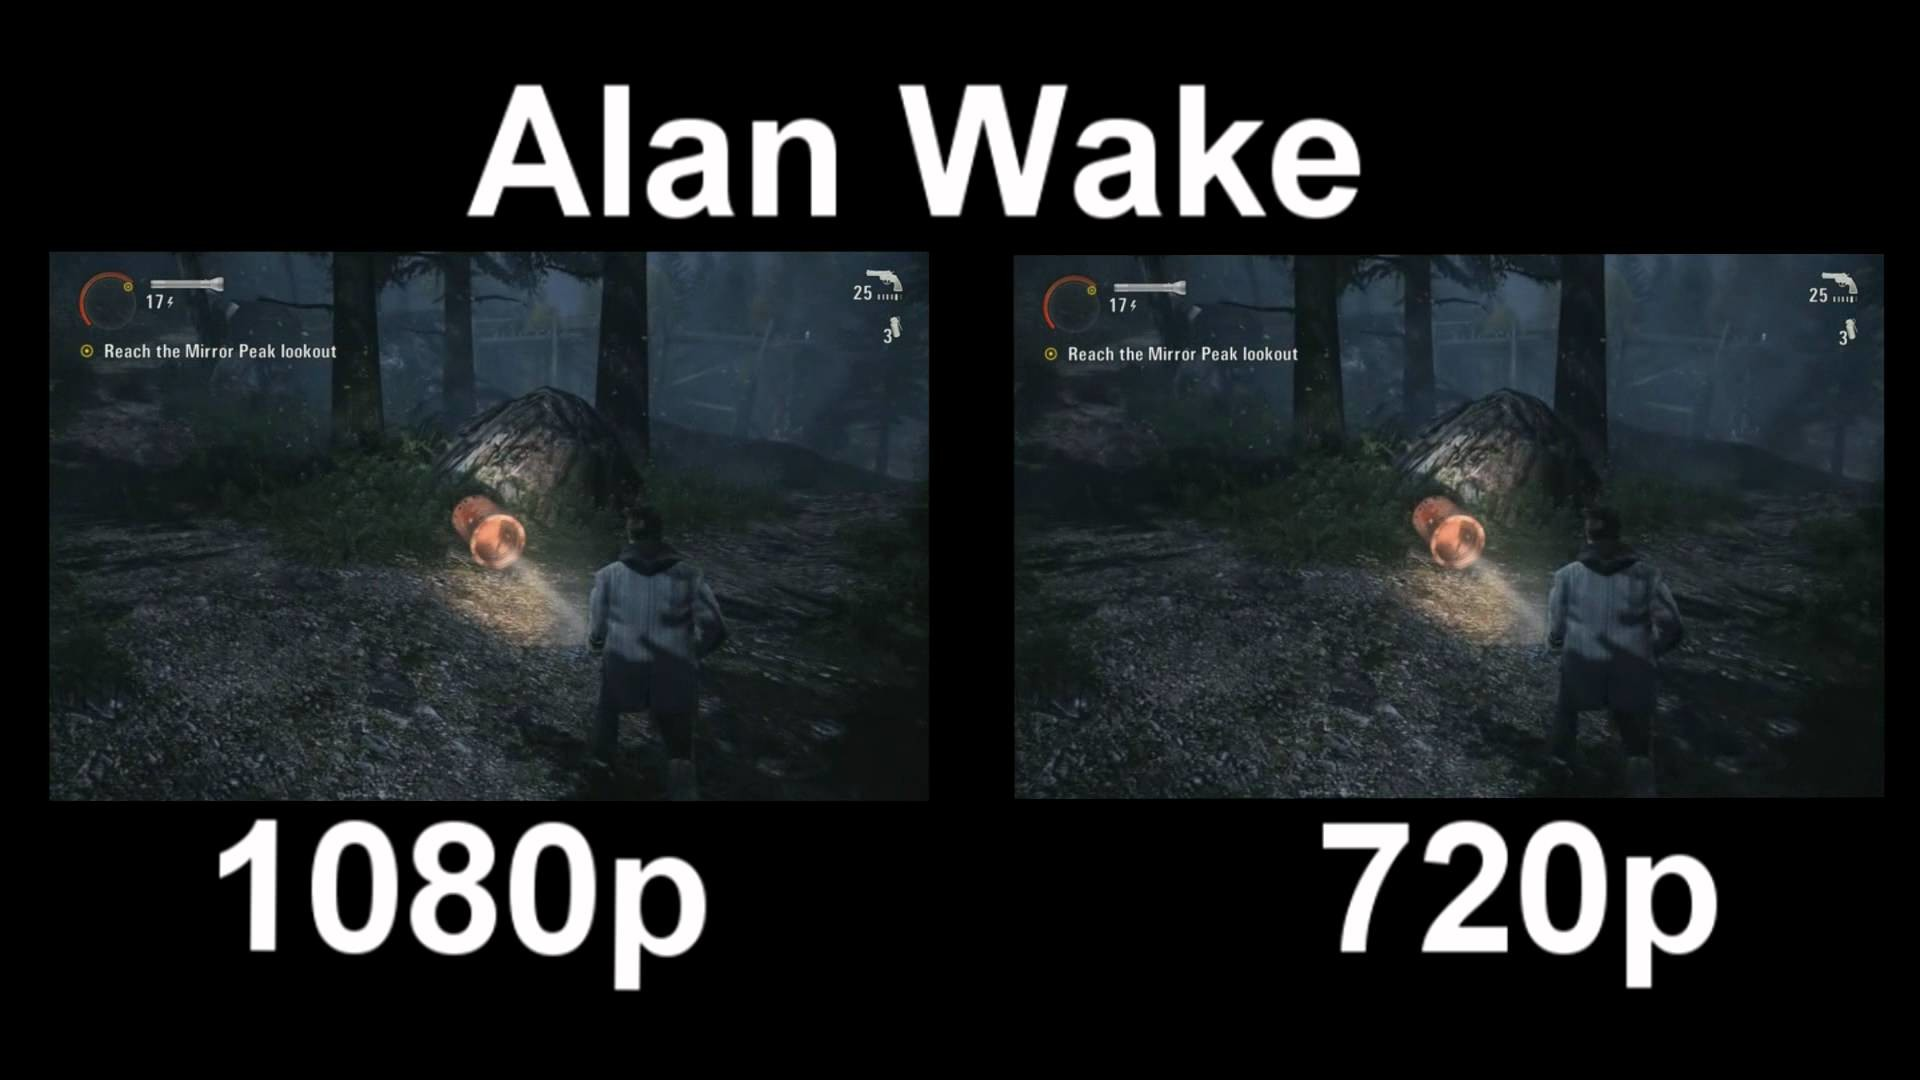 1920x1080 1080p Vs. 720p (Alan Wake)